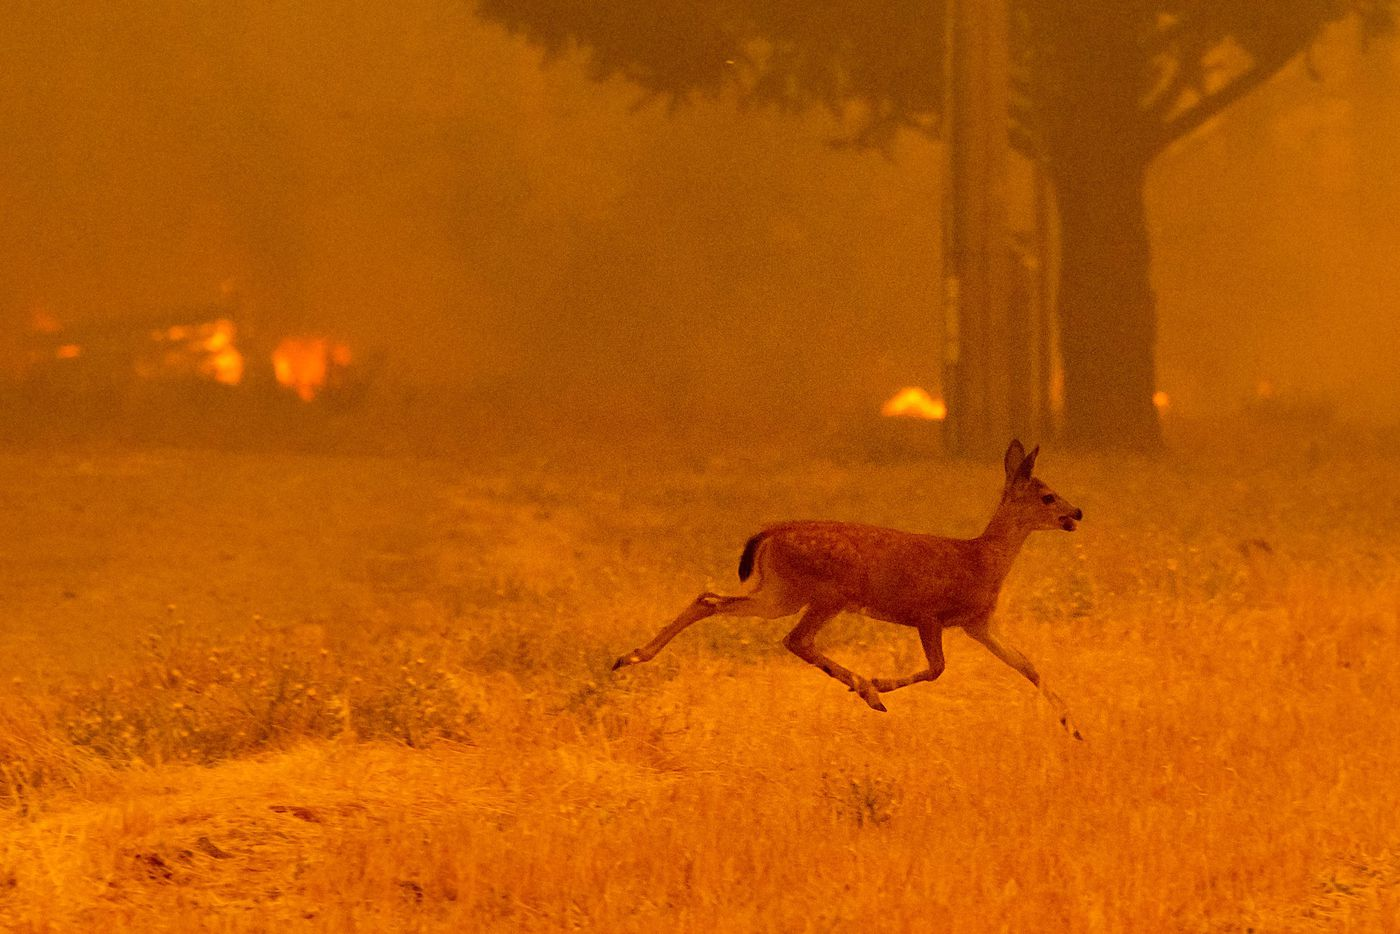 TOPSHOT - A deer runs from flames as the Ranch Fire tears down New Long Valley Rd near Clearlake Oaks, California, on Saturday, August 4, 2018.   The Ranch Fire is part of the Mendocino Complex, which is made up of two blazes, the River Fire and the Ranch Fire. / AFP PHOTO / NOAH BERGERNOAH BERGER/AFP/Getty Images